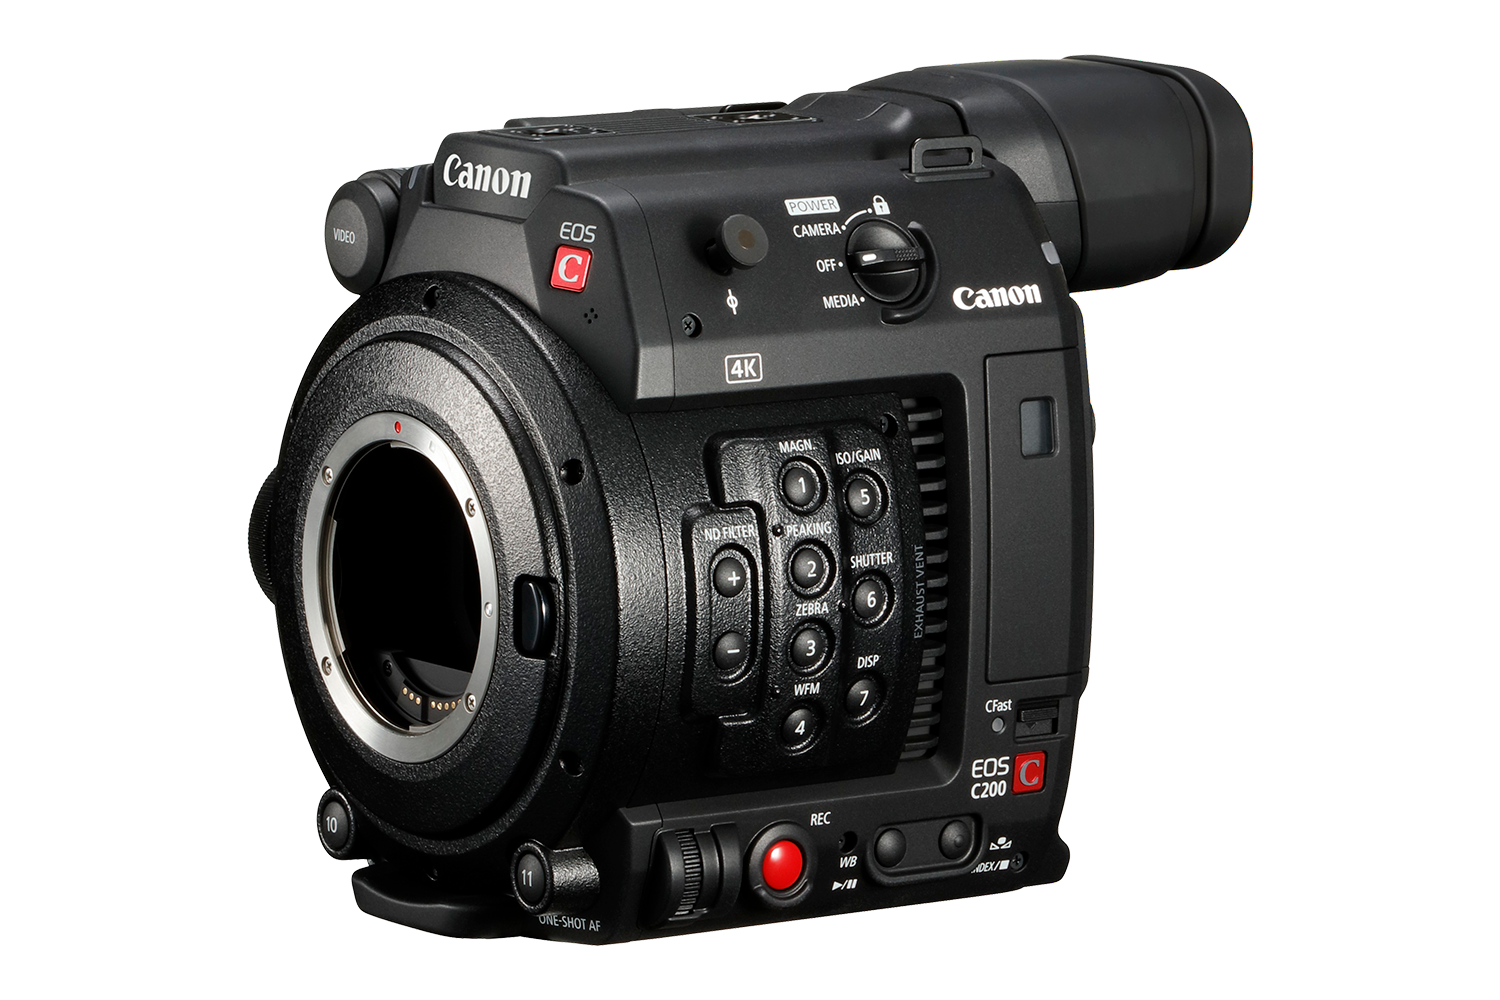 VIDEO: We discuss the new Canon C200 with David Newton at IBC 2017